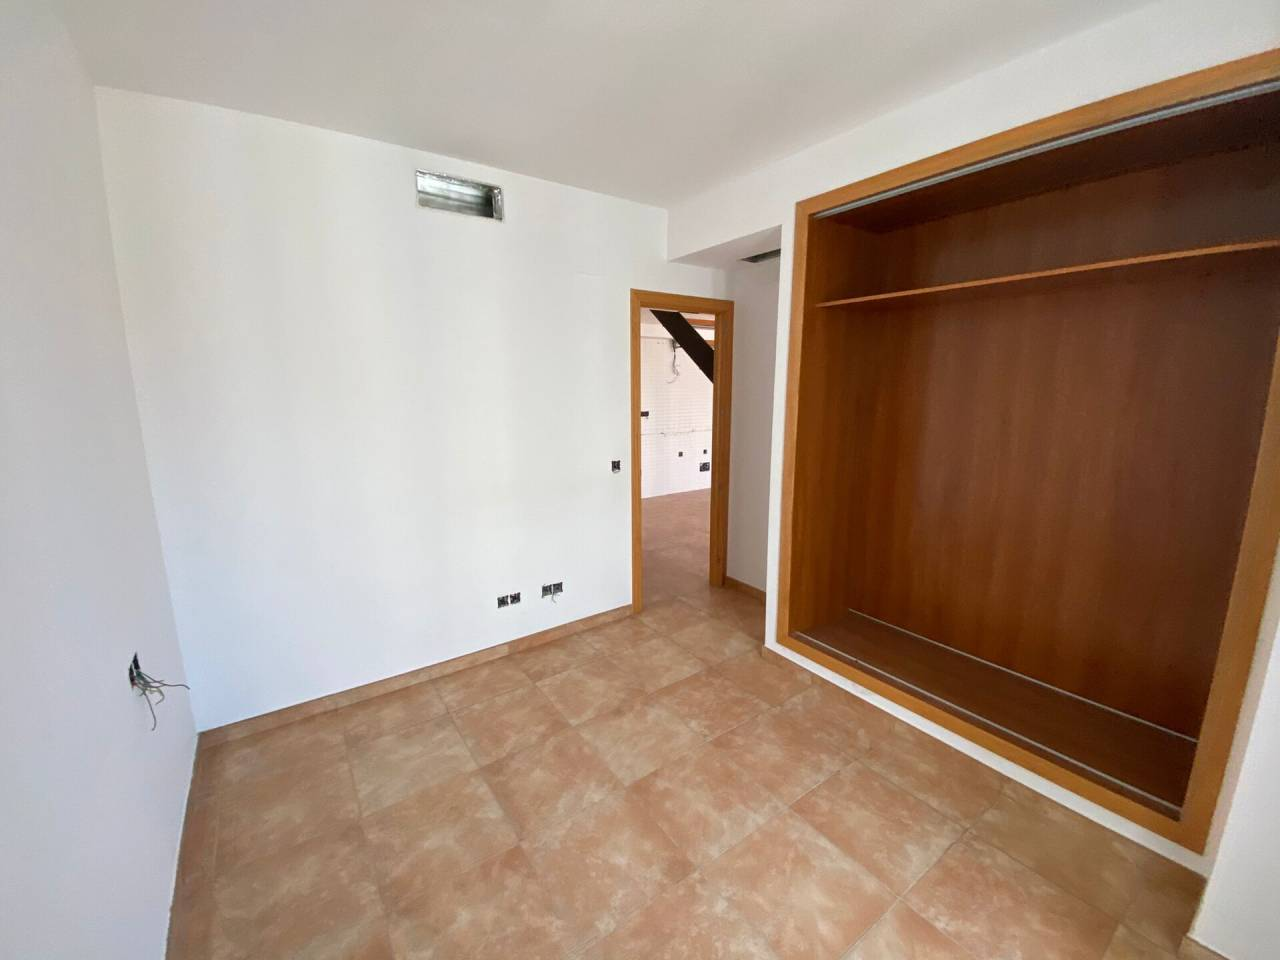 050270 - Flat for sale in L'Escala